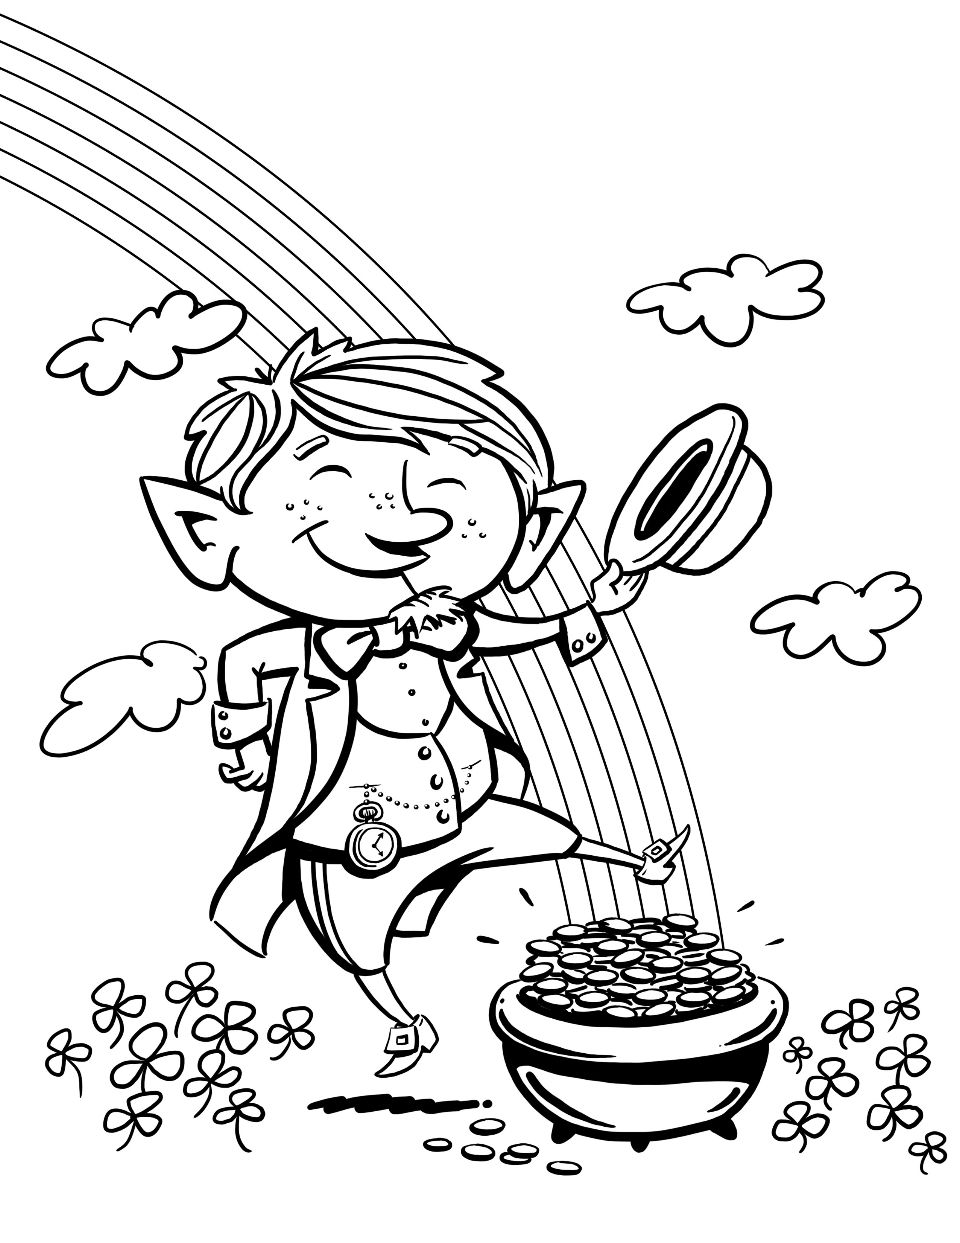 Coloring sheet leprechaun - Leprechaun Coloring Printables Google Search